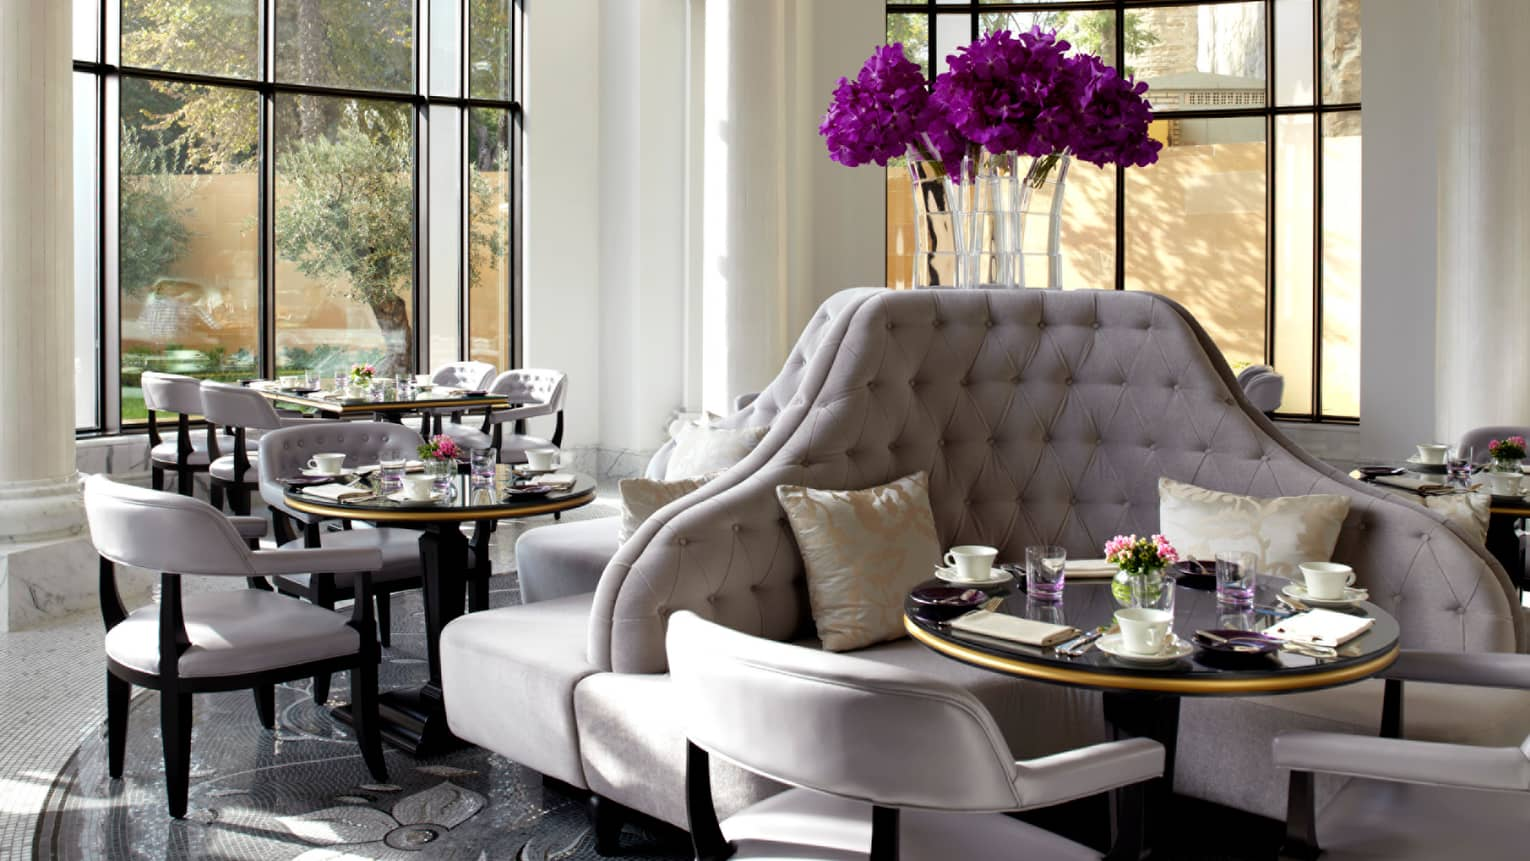 Sunny Zafferano dining room with tall, curved plush grey banquettes with purple flowers in vase above, chairs